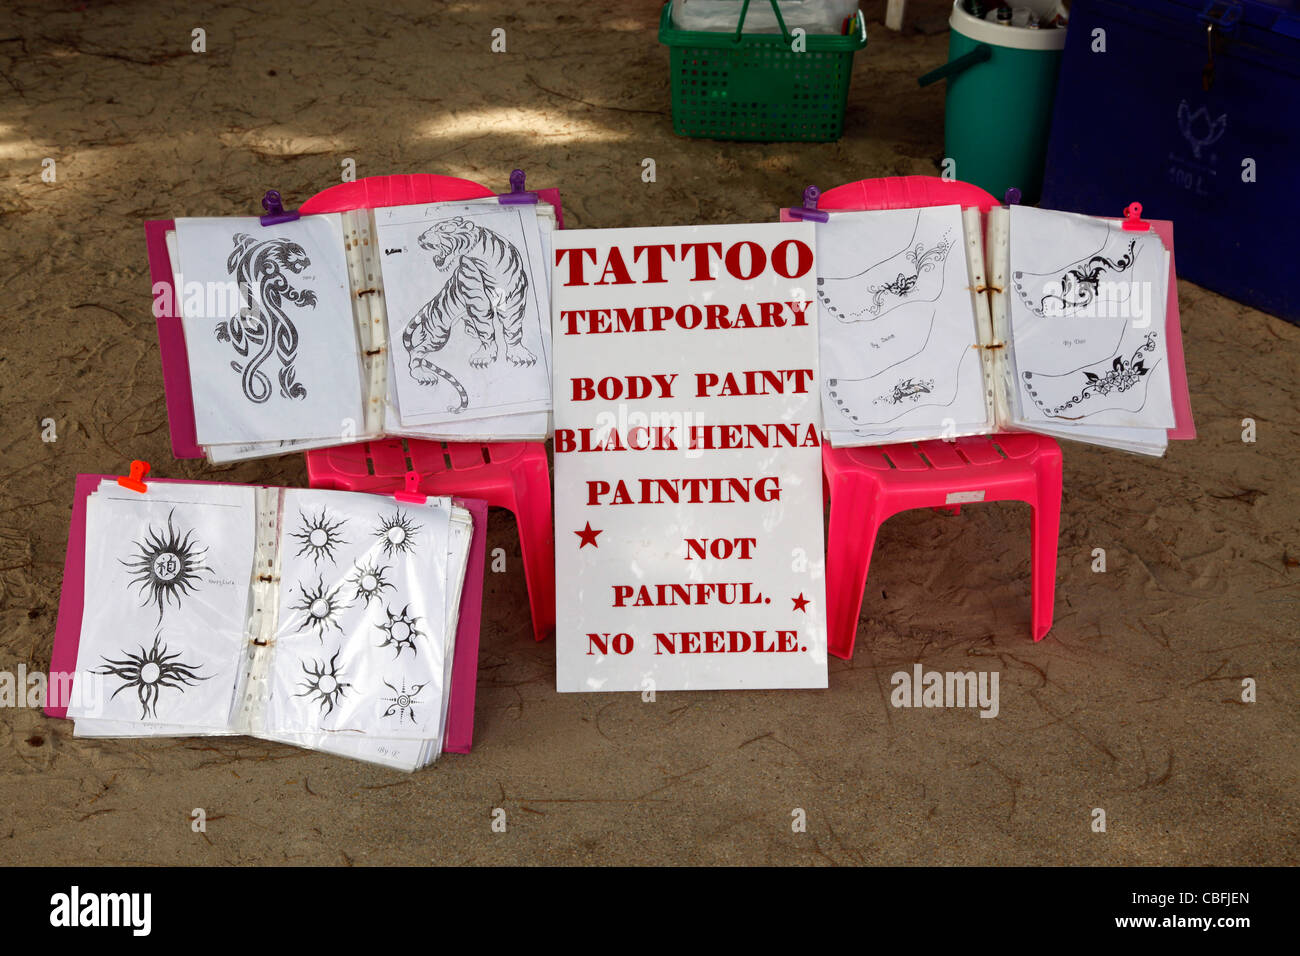 Henna tattoo advert for temporary tattoos and body painting for ...